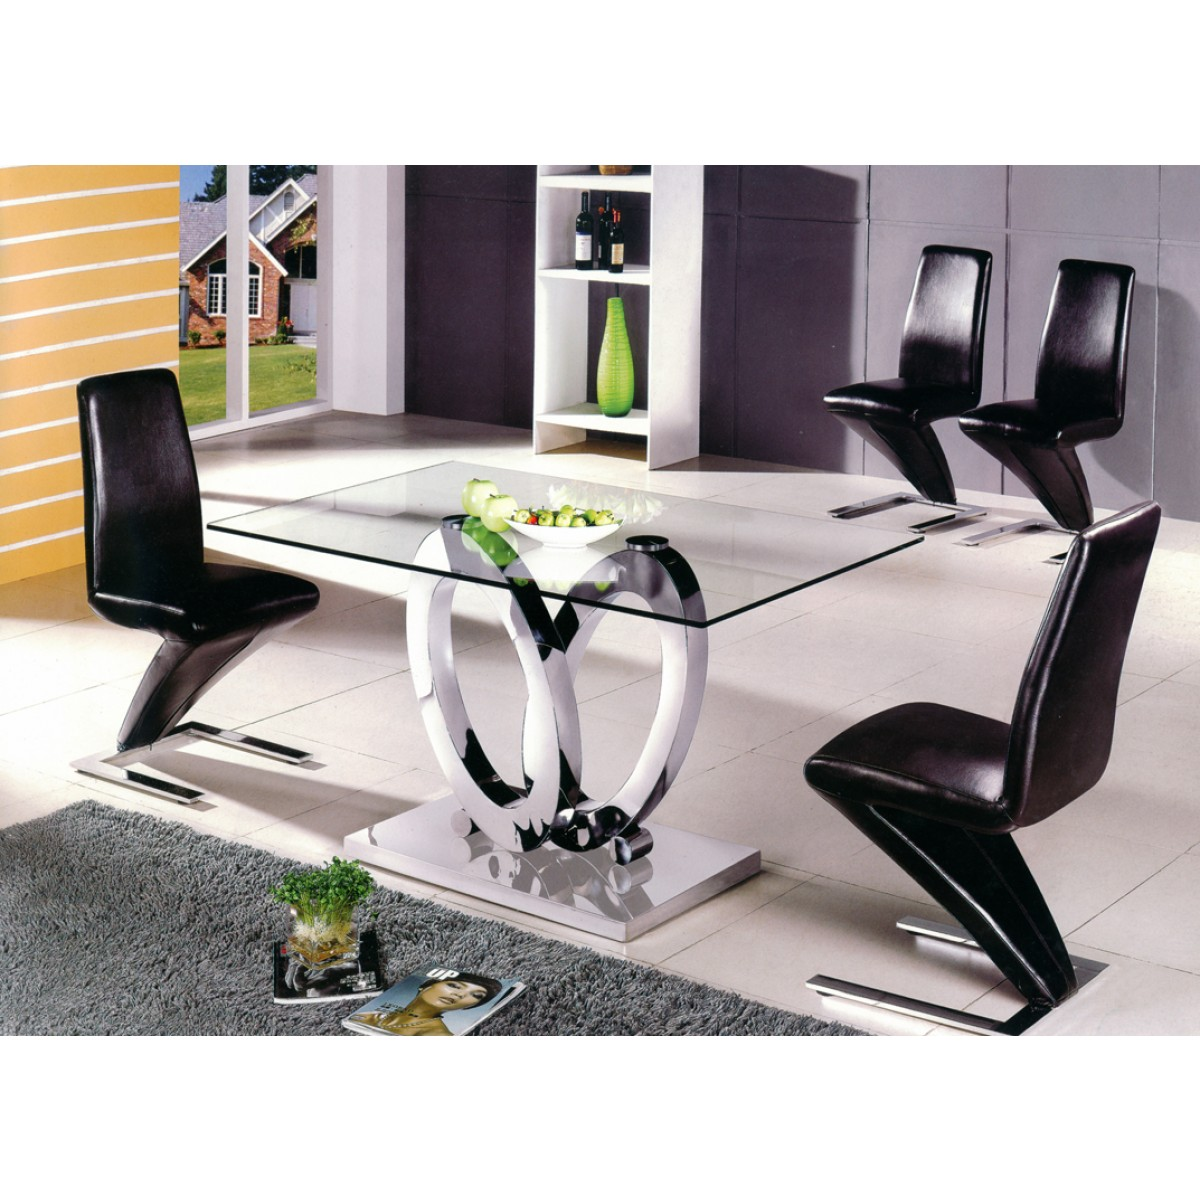 Table manger design ellipse taille au choix tables for Table de salle a manger etroite